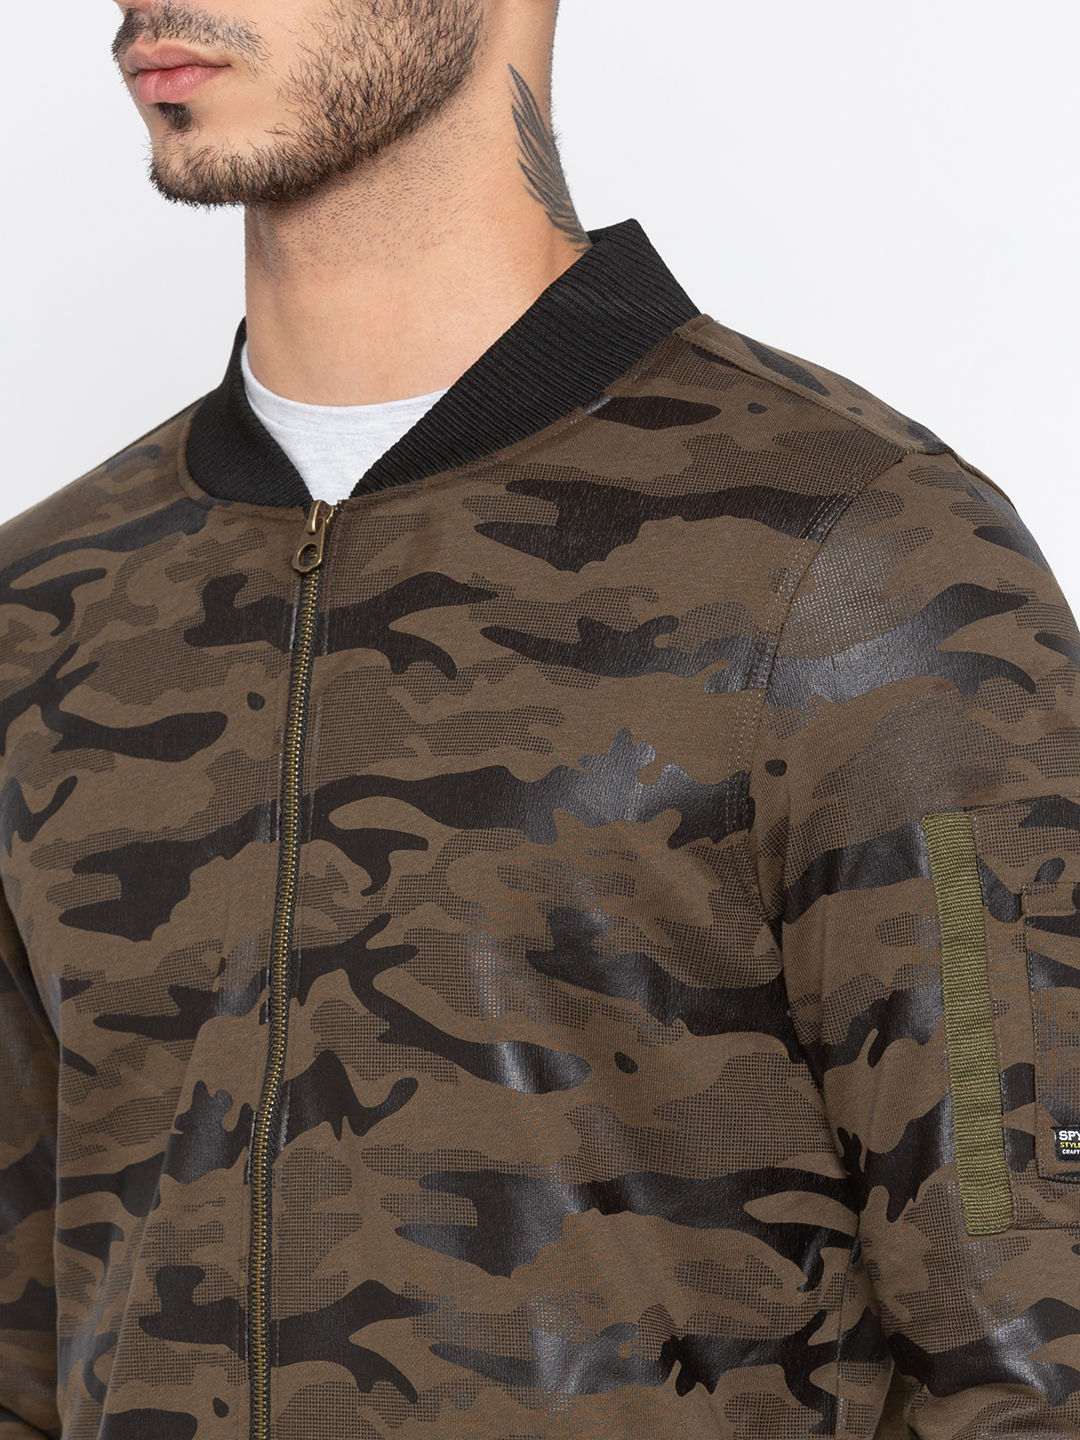 Green Printed Slim Fit Bomber Jackets